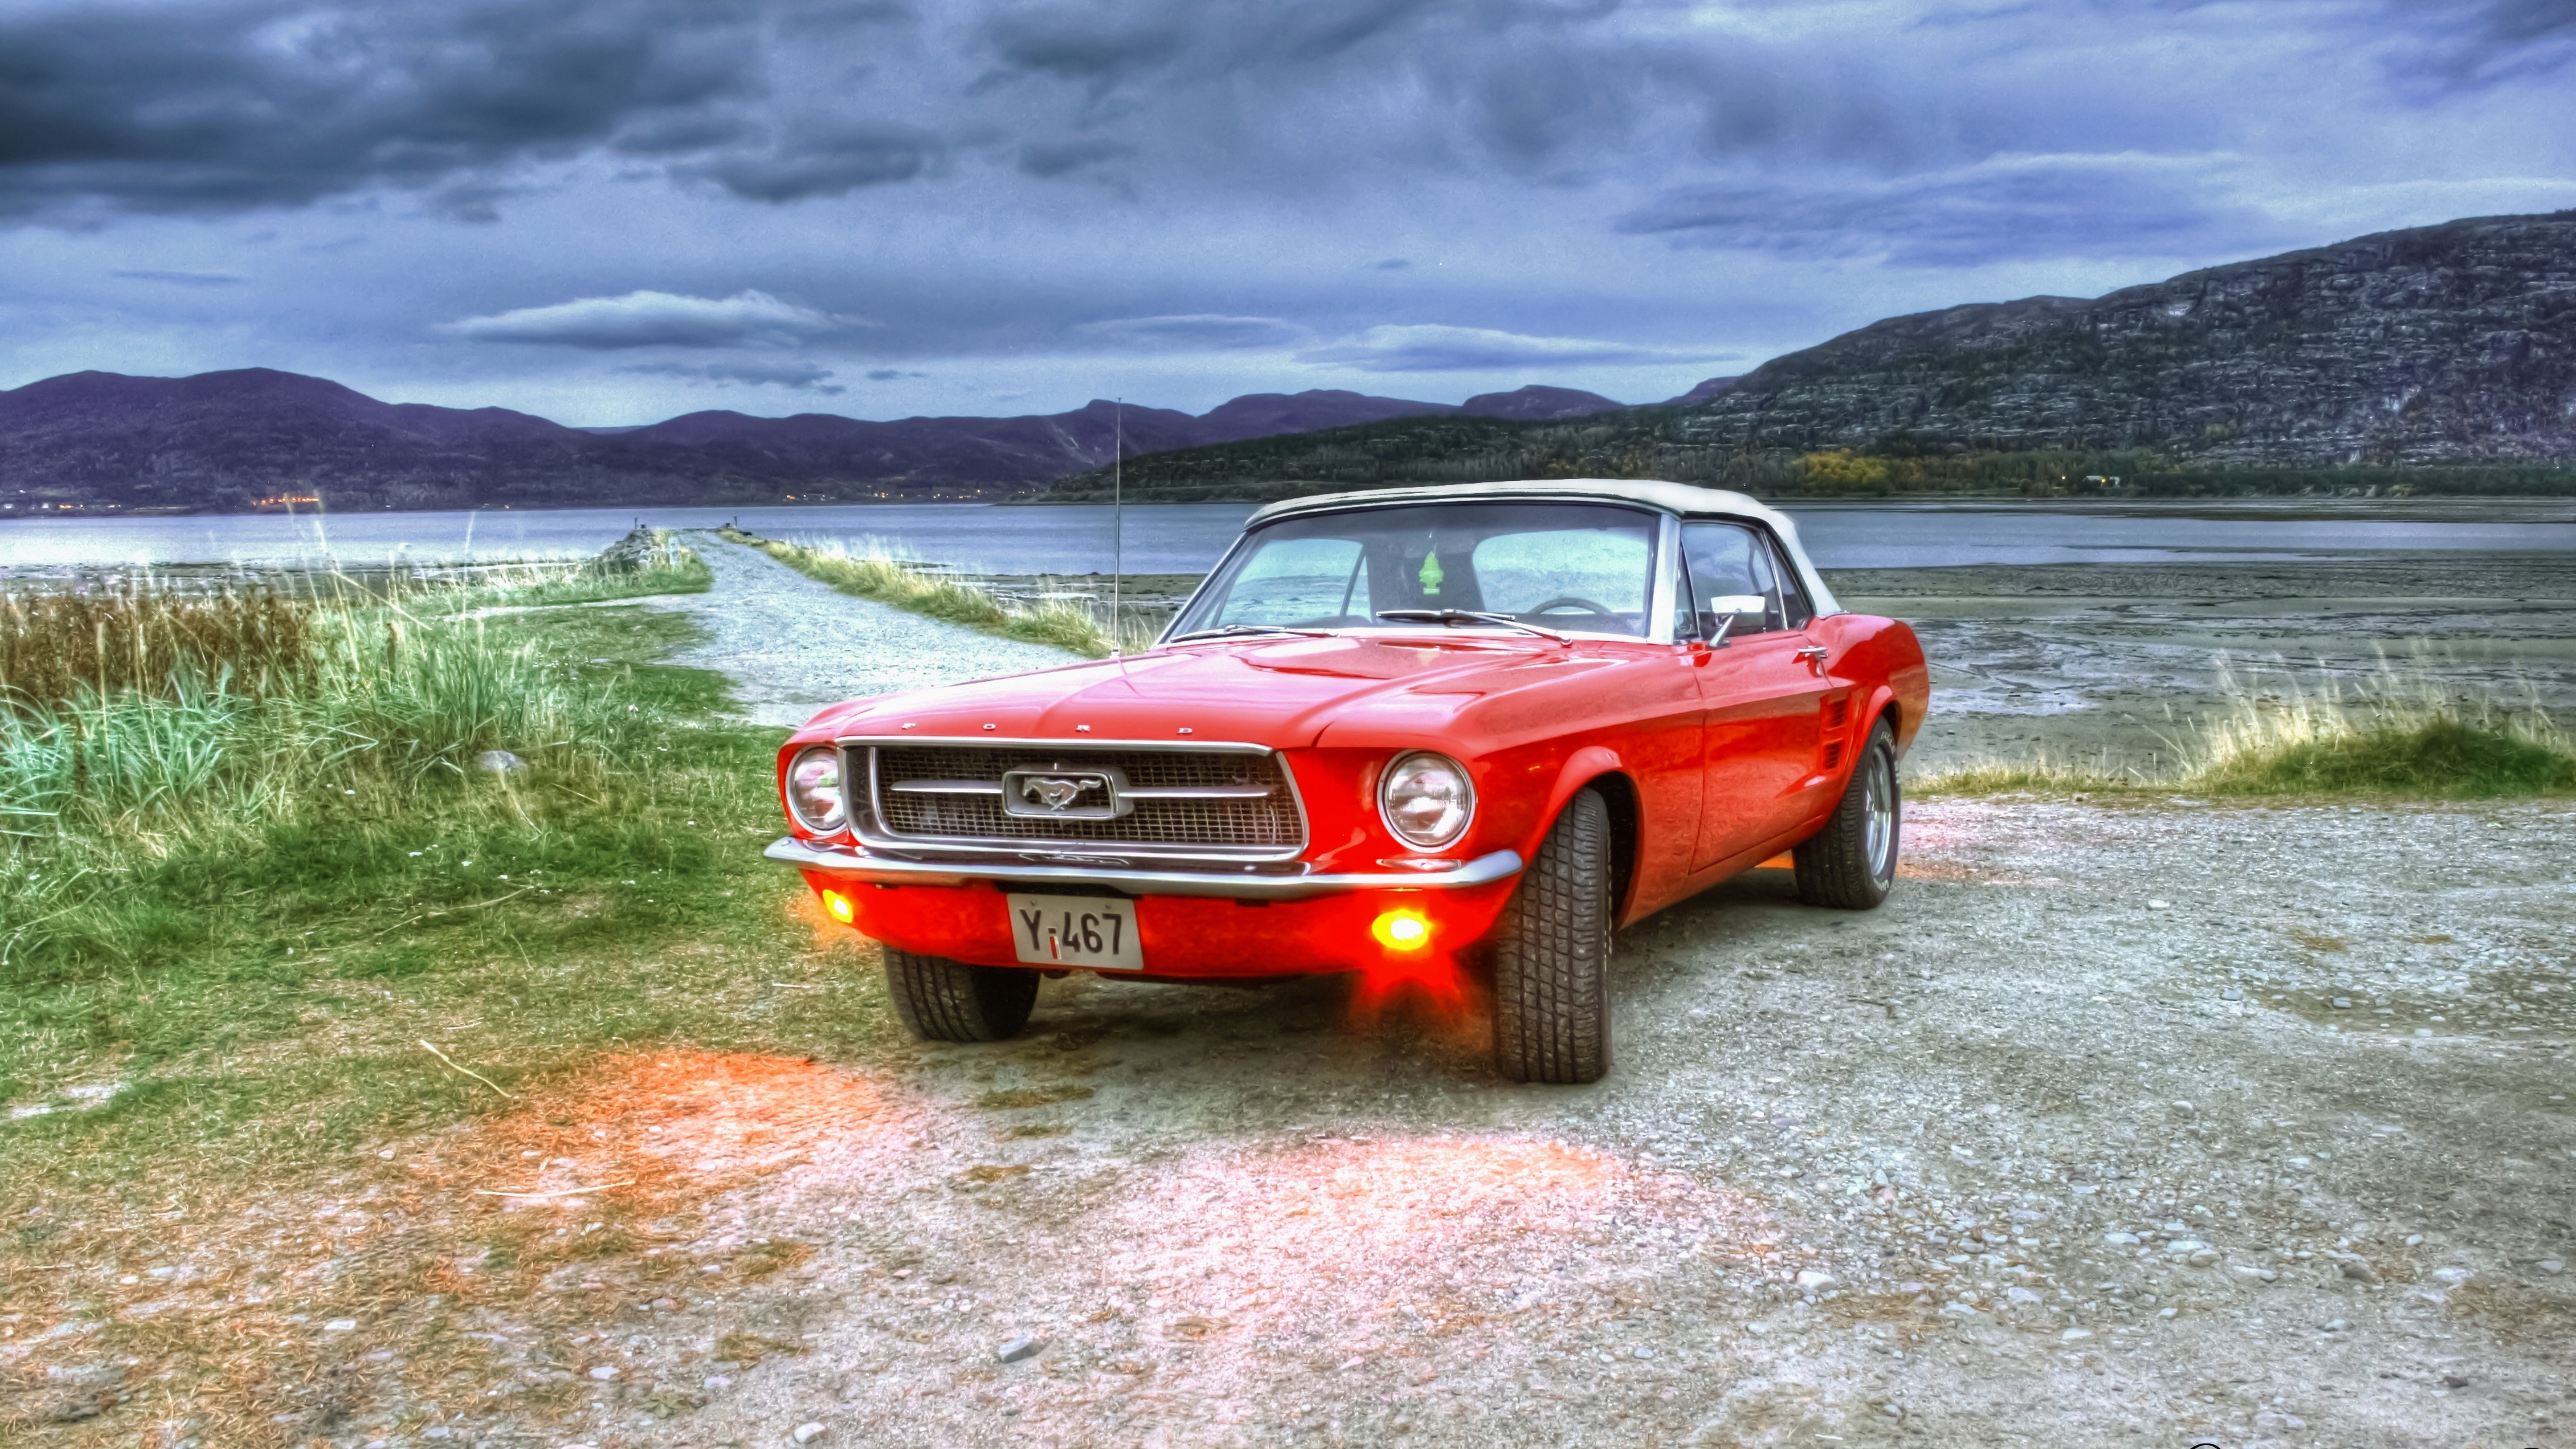 ford mustang hdr 4k 1538934921 - ford, mustang, hdr 4k - Mustang, HDR, Ford